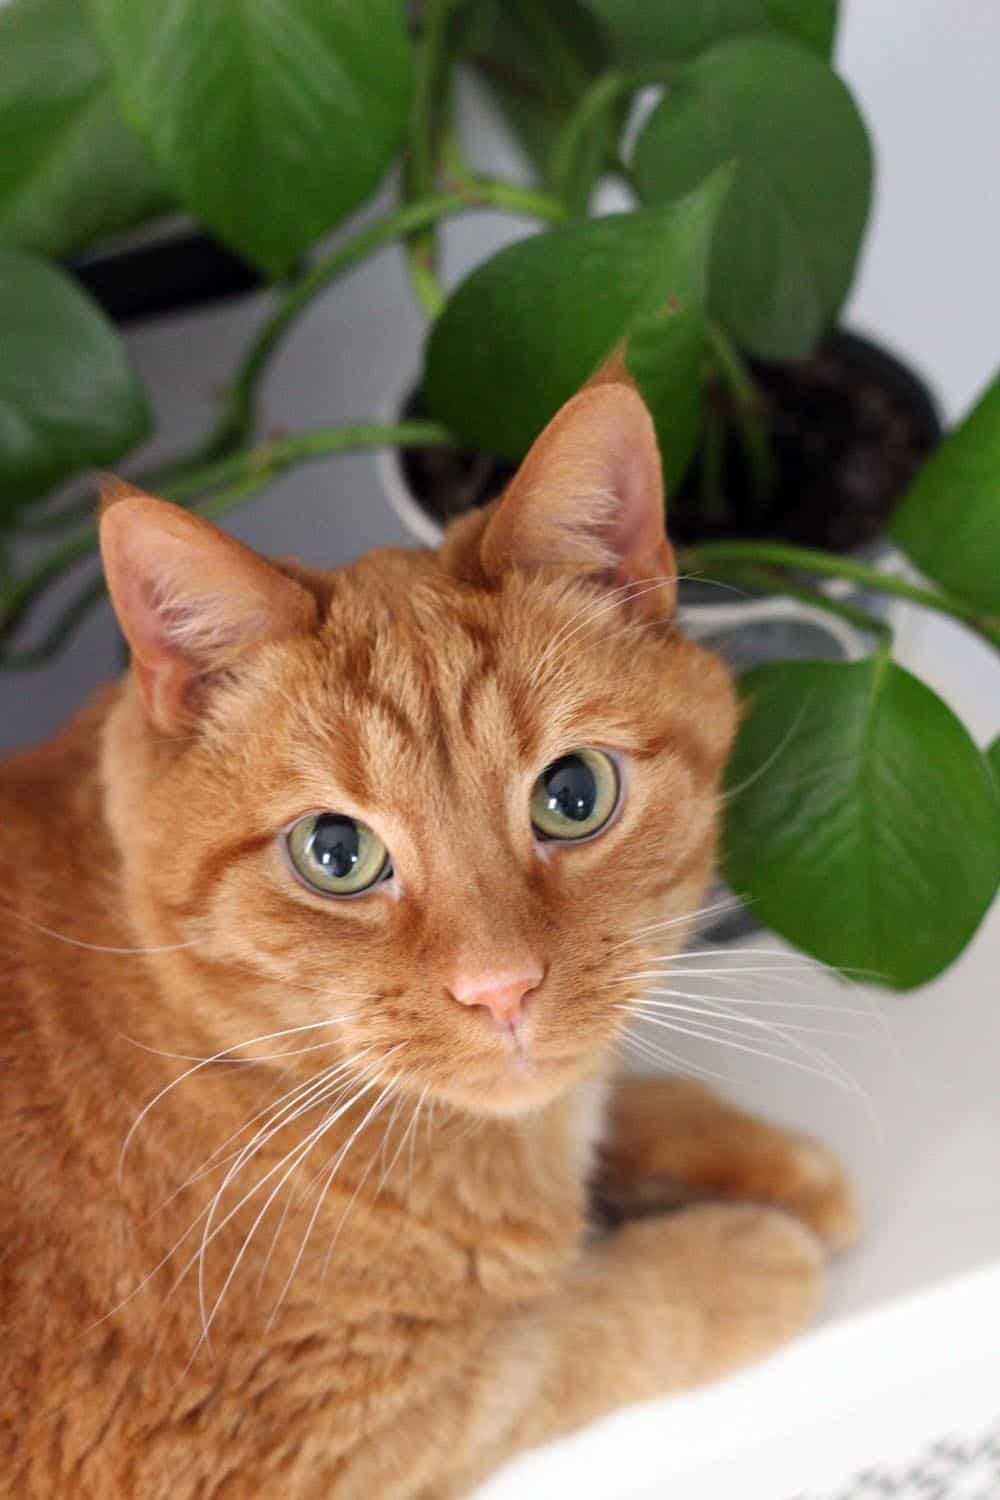 Orange tabby cat looking at the camera, with leafy green plant in the background.